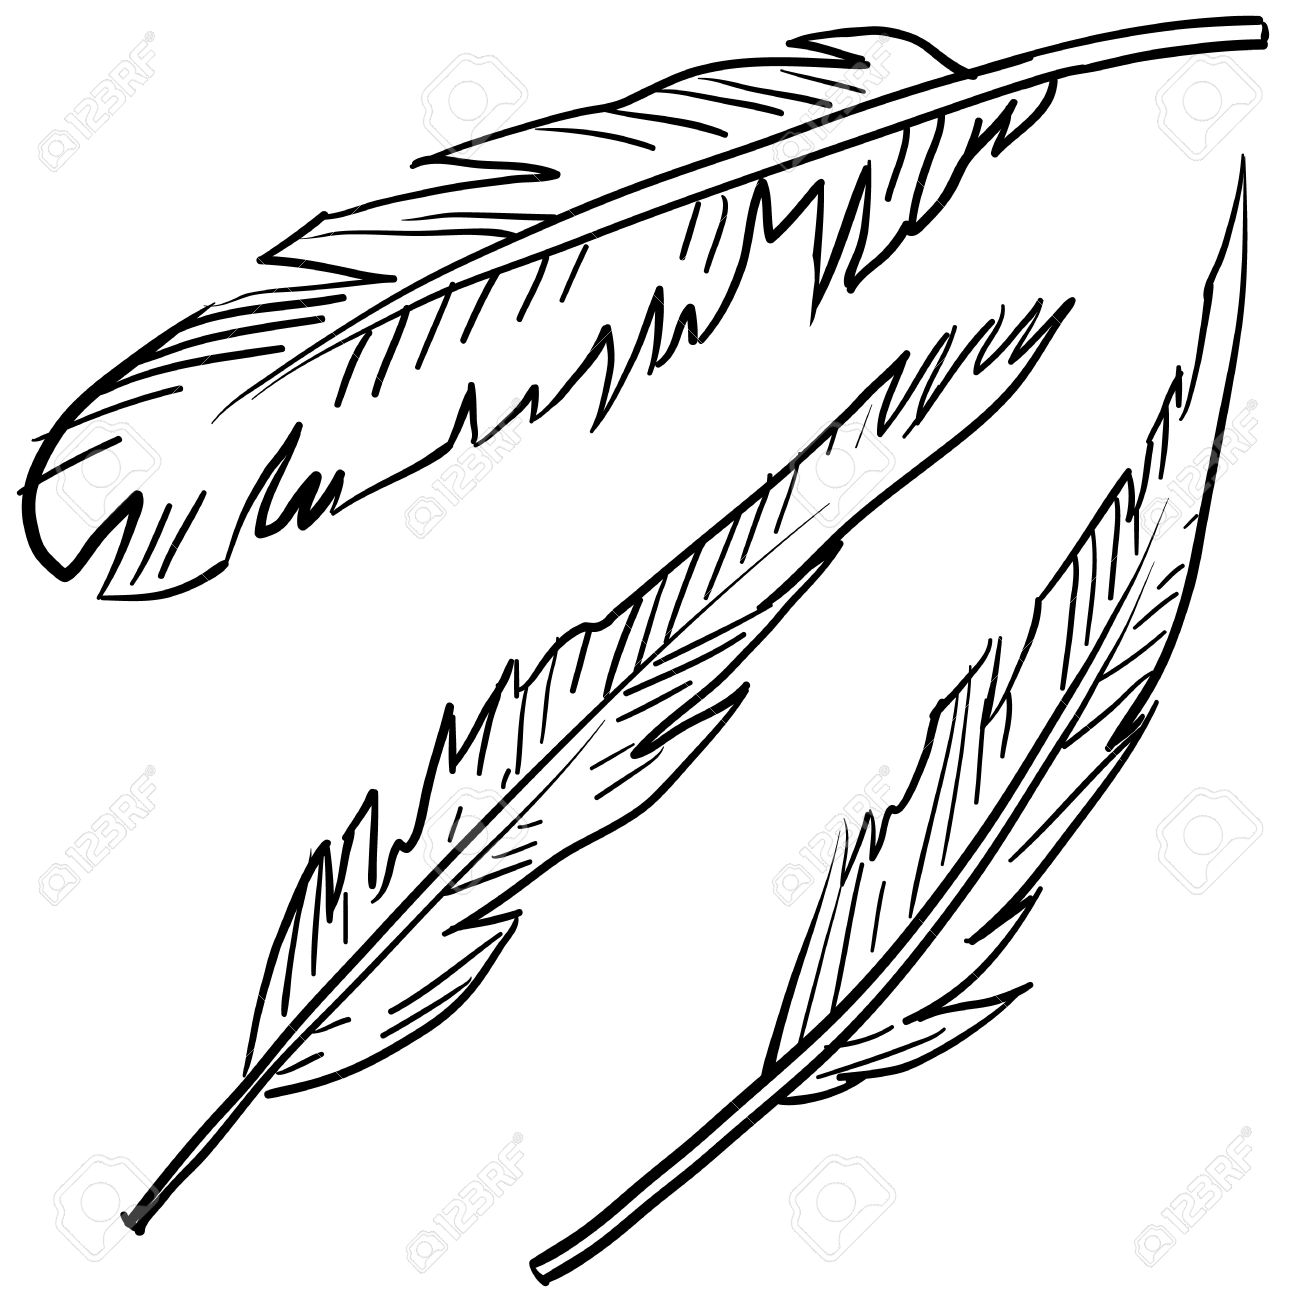 Doodle style bird feathers illustration in vector format Stock Vector - 14420377